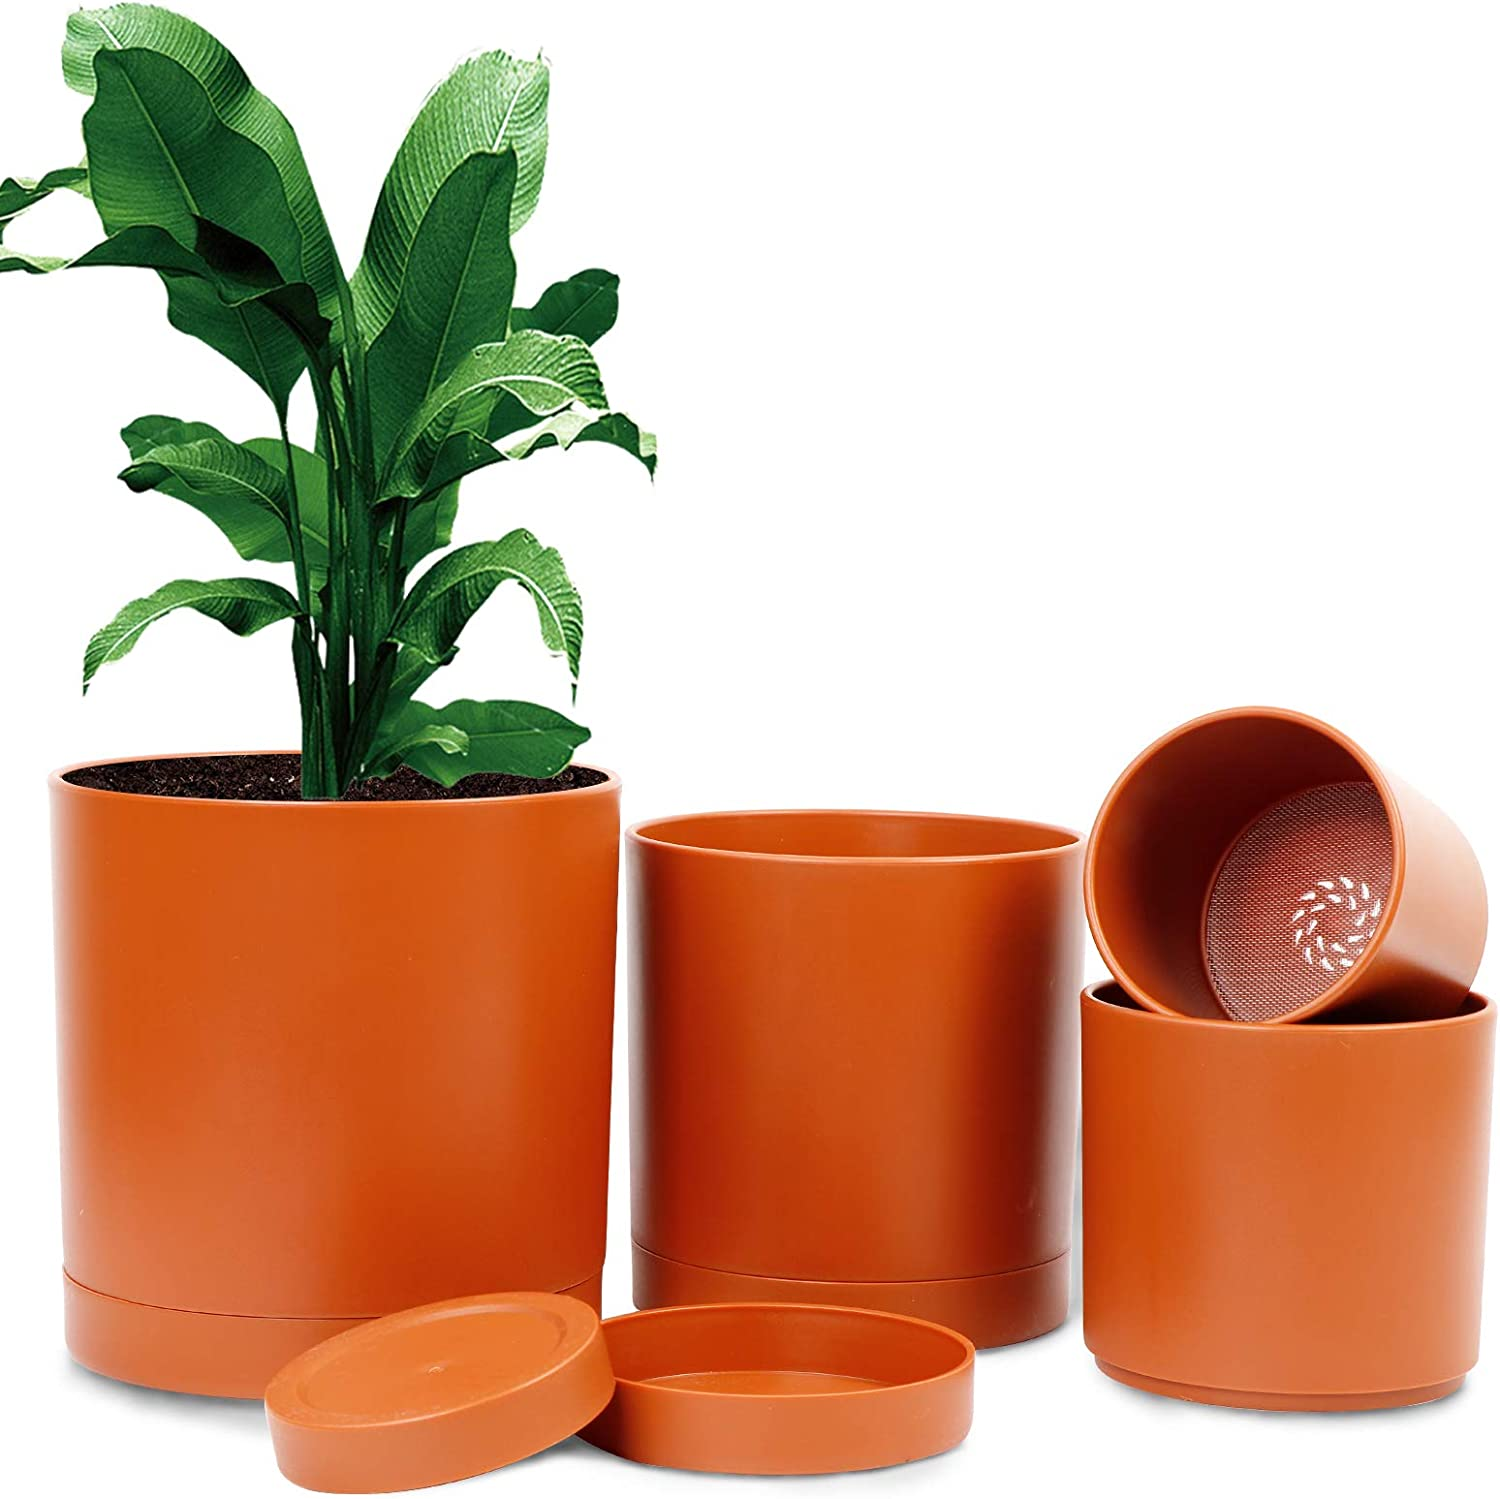 Ourwarm Plant Pots for Plants,Set of 4 Terracotta Pots,4/5/6/7 inch Modern Indoor and Outdoor Plastic Planter Flower Pot for Office Decor and Patio Garden,Planters with Drainage Hole and Saucer Tray